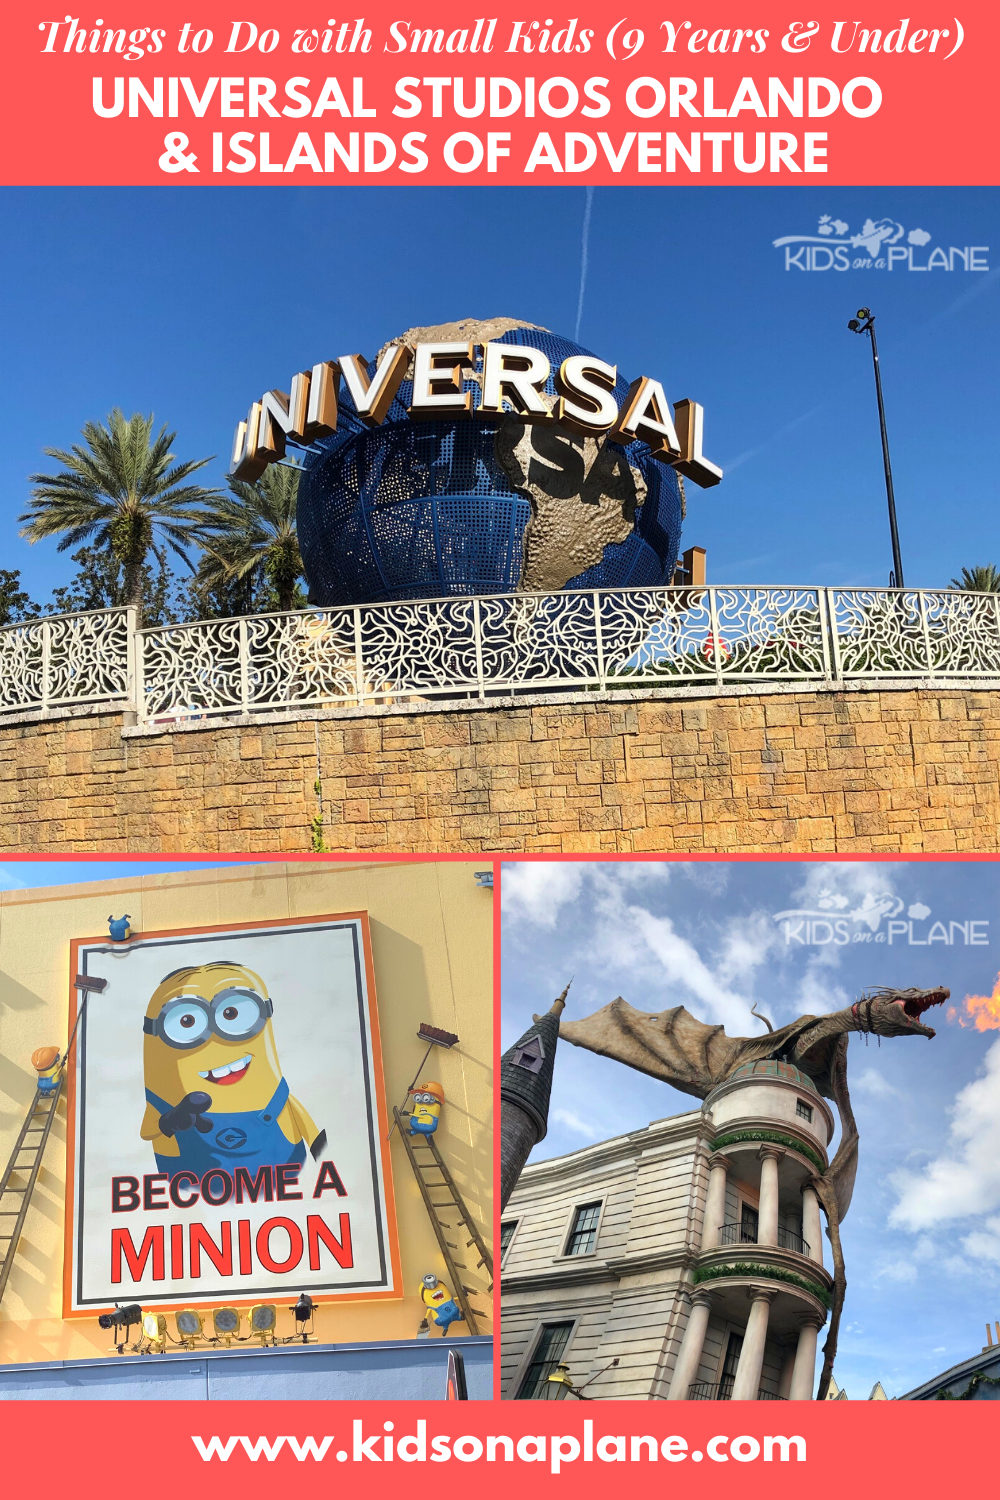 Things to Do with Small Kids - Universal Studios Orlando and Islands of Adventure - 9 Years Old and Younger